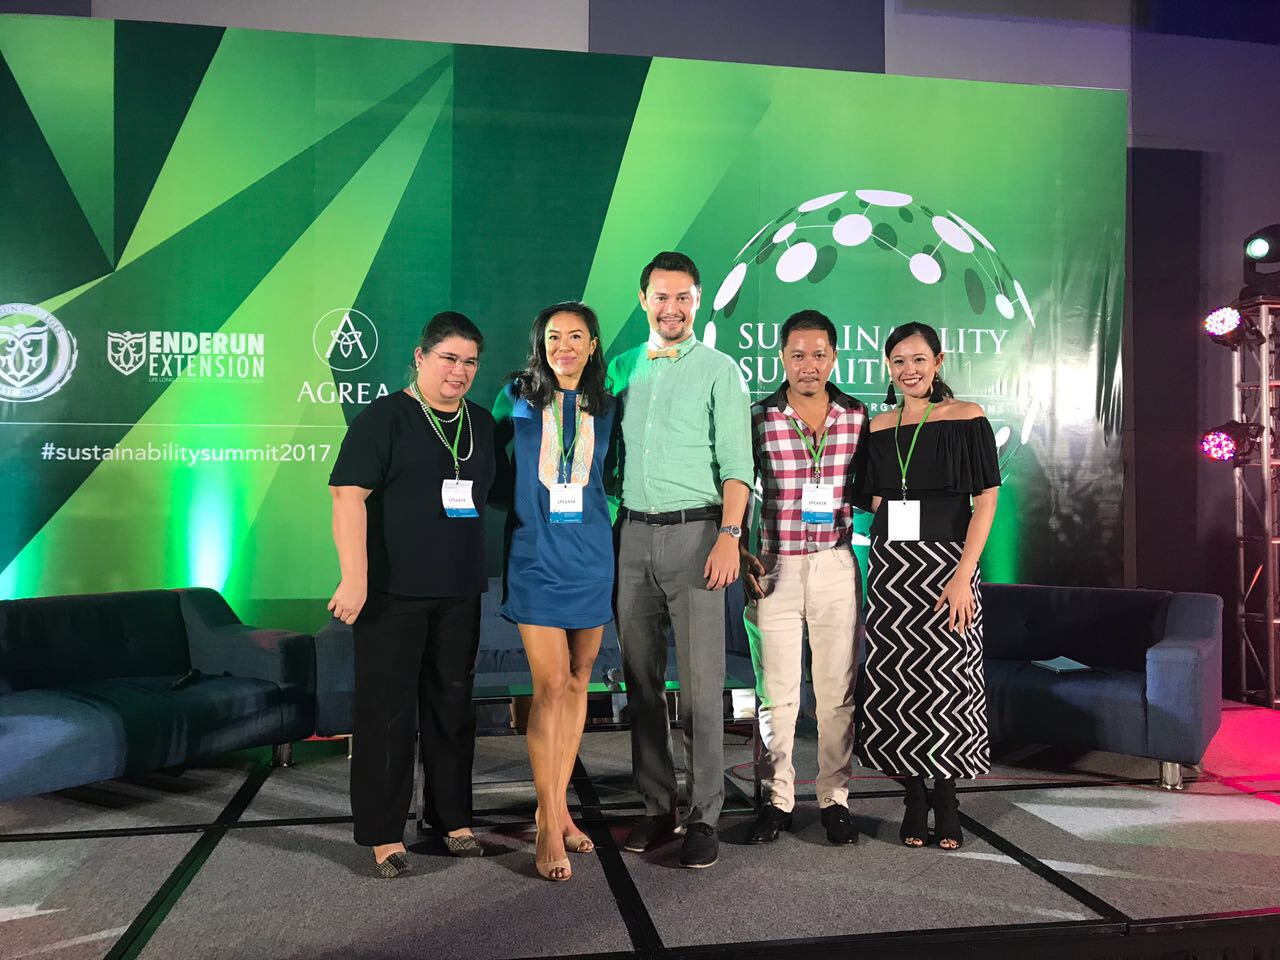 Sustainability Summit 2017 Manila, Philippines  September 20, 2017 | SMX Convention Center, SM Aura Premier, Taguig City